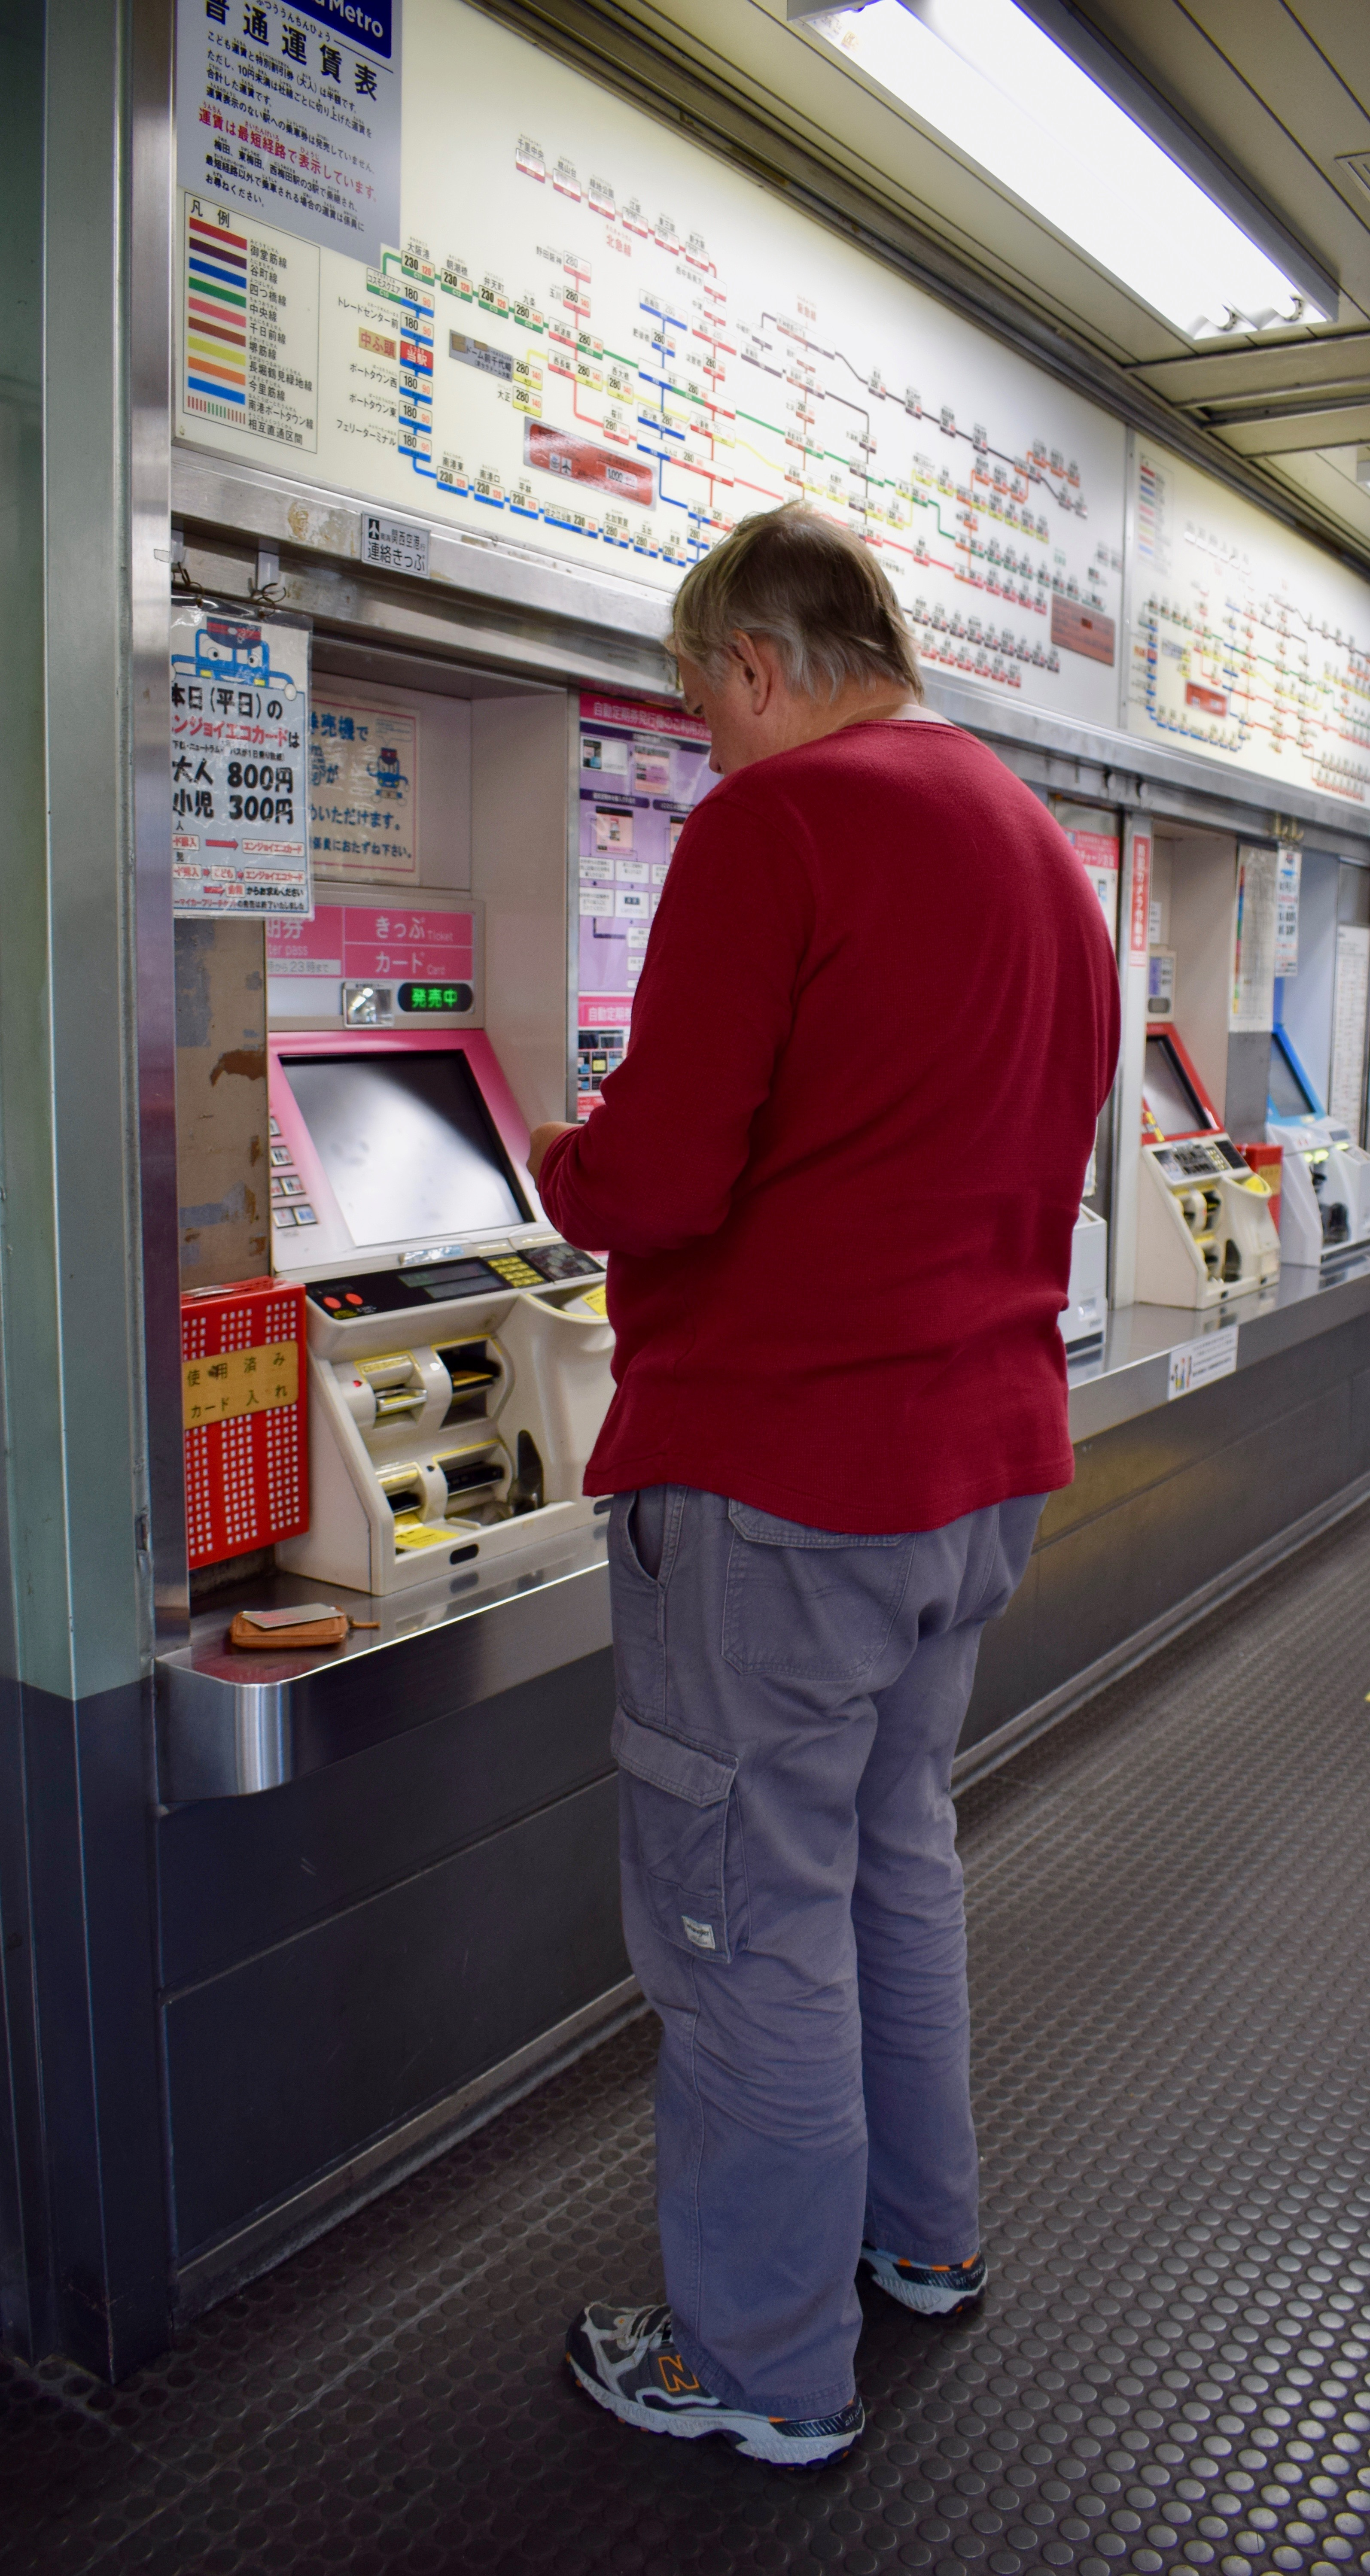 Paul Refilling The PASMO Cards For Japanese Subway